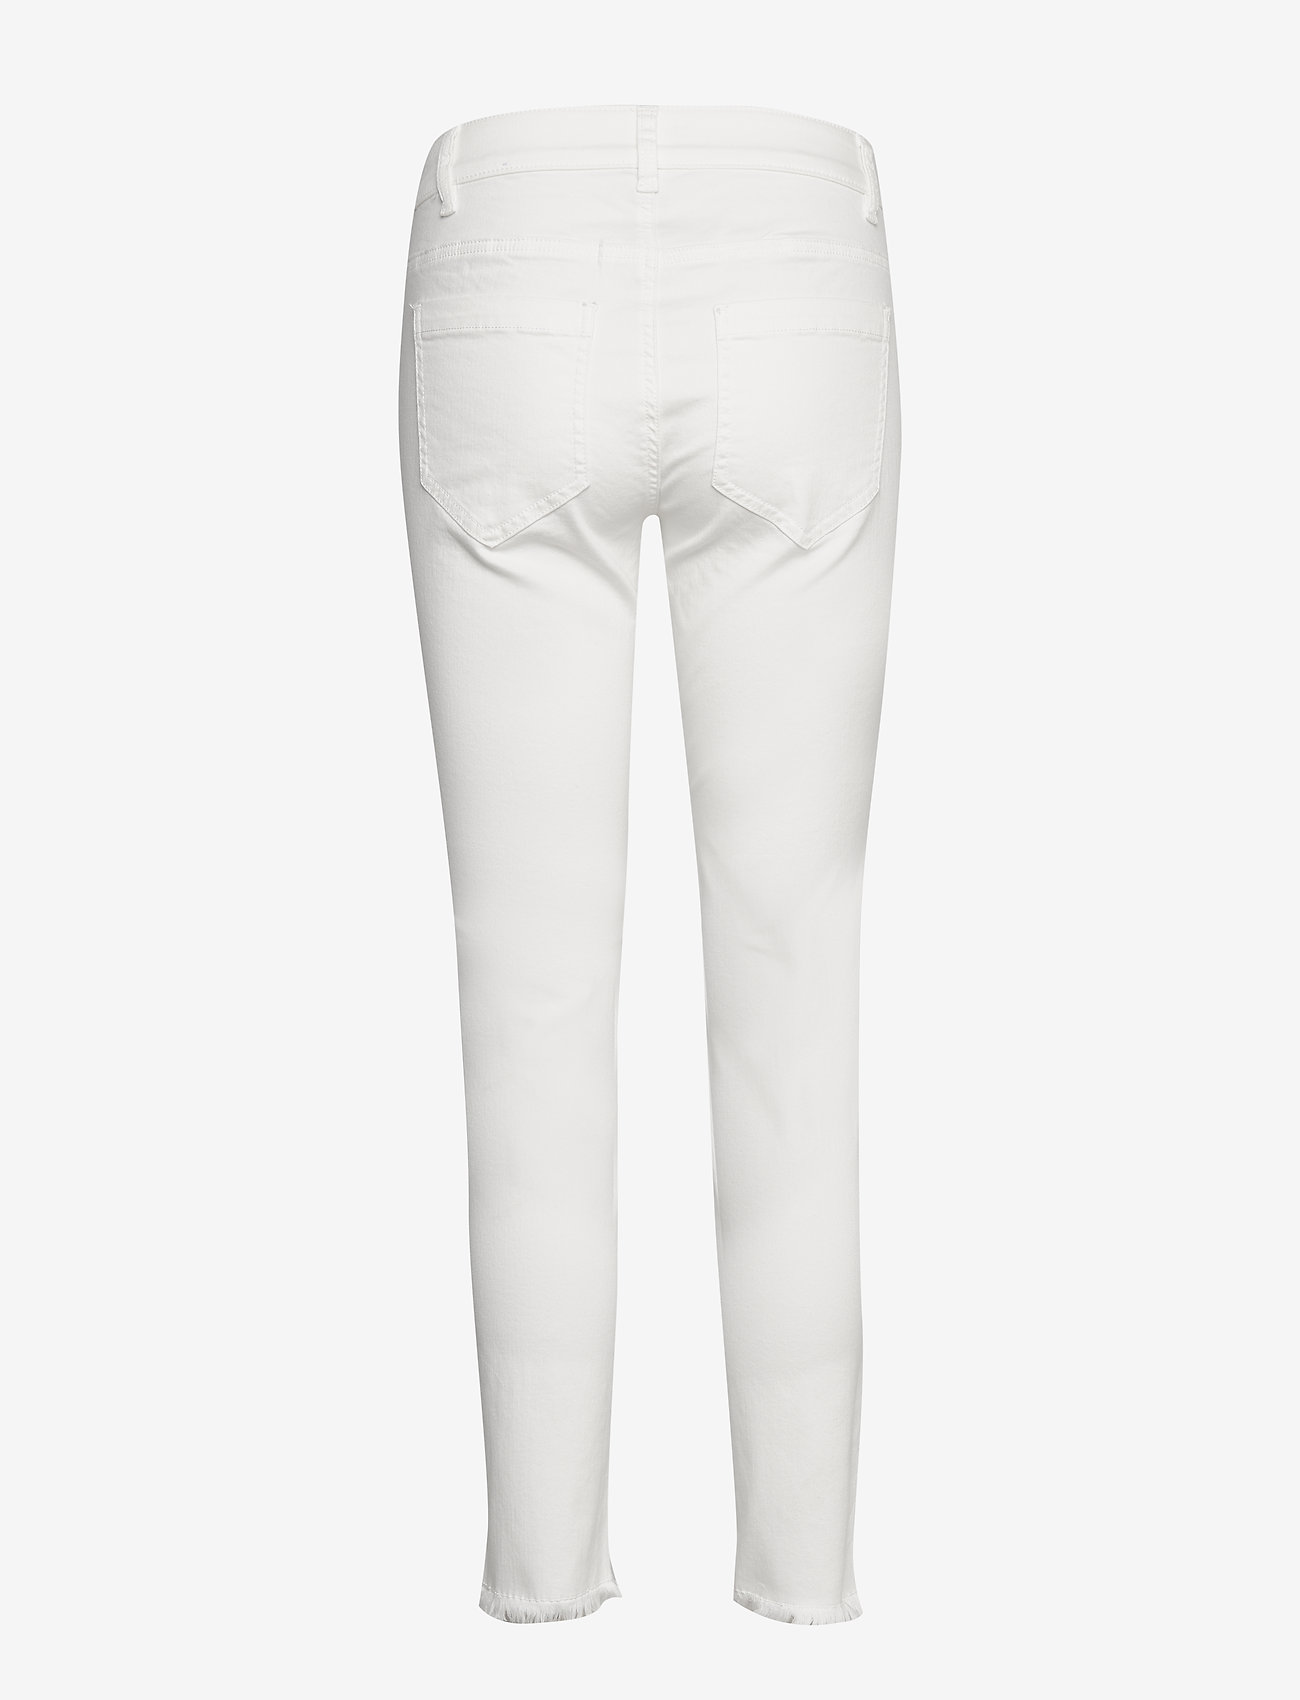 Taifun - CROP TROUSERS JEANS - skinny jeans - offwhite - 1